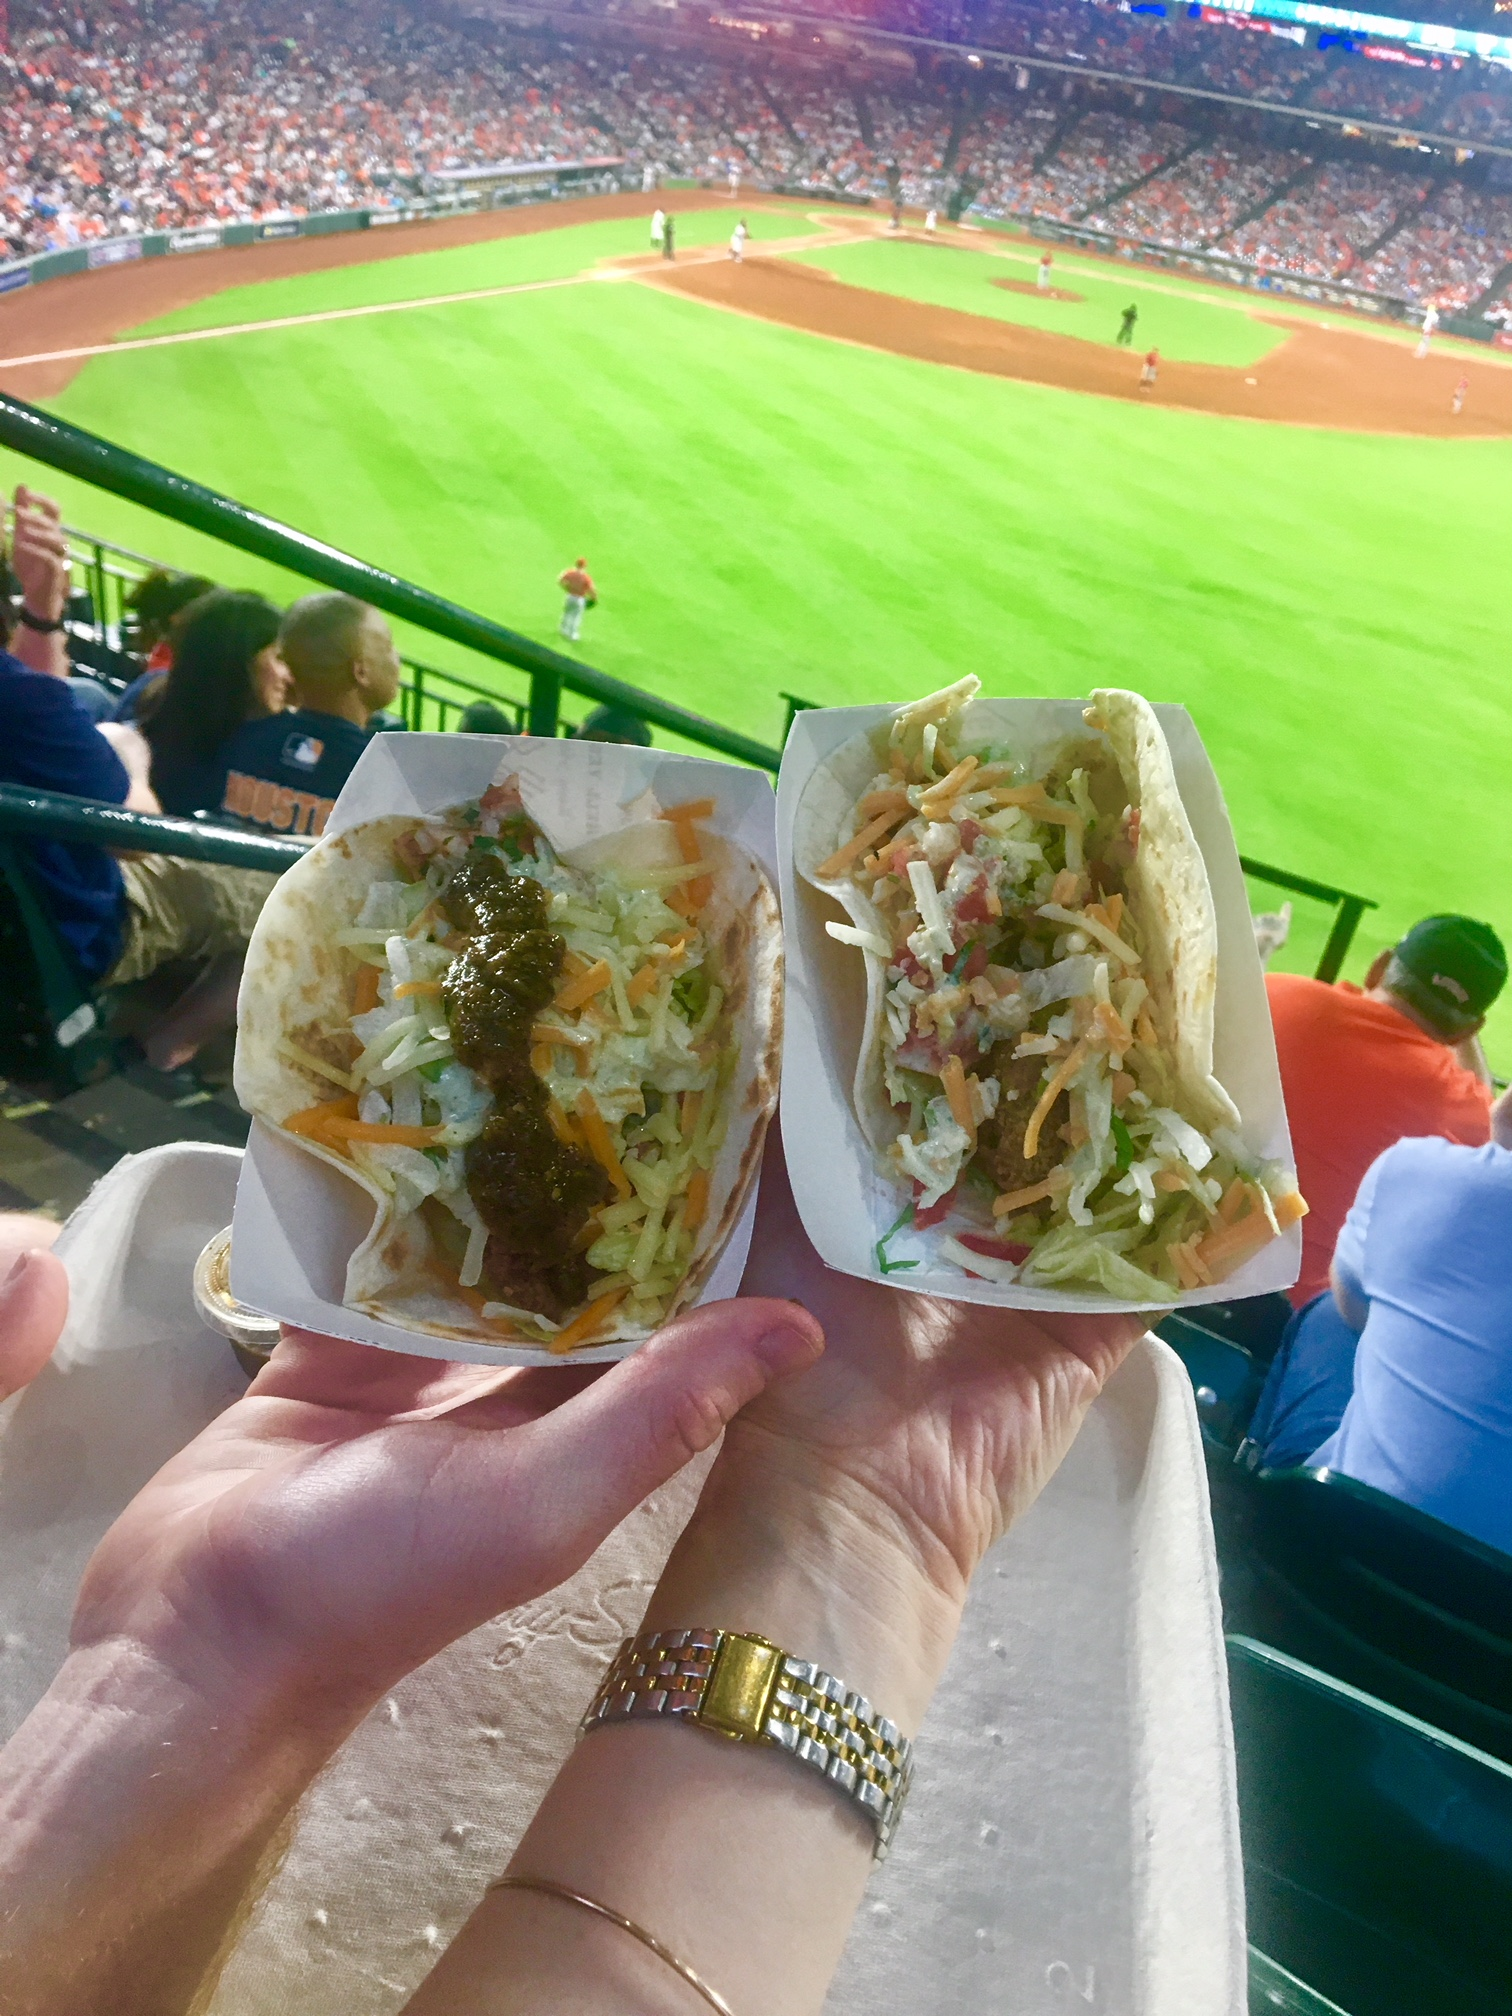 Torchys Minute Maid Park Its Not Hou Its Me Houston Lifestyle